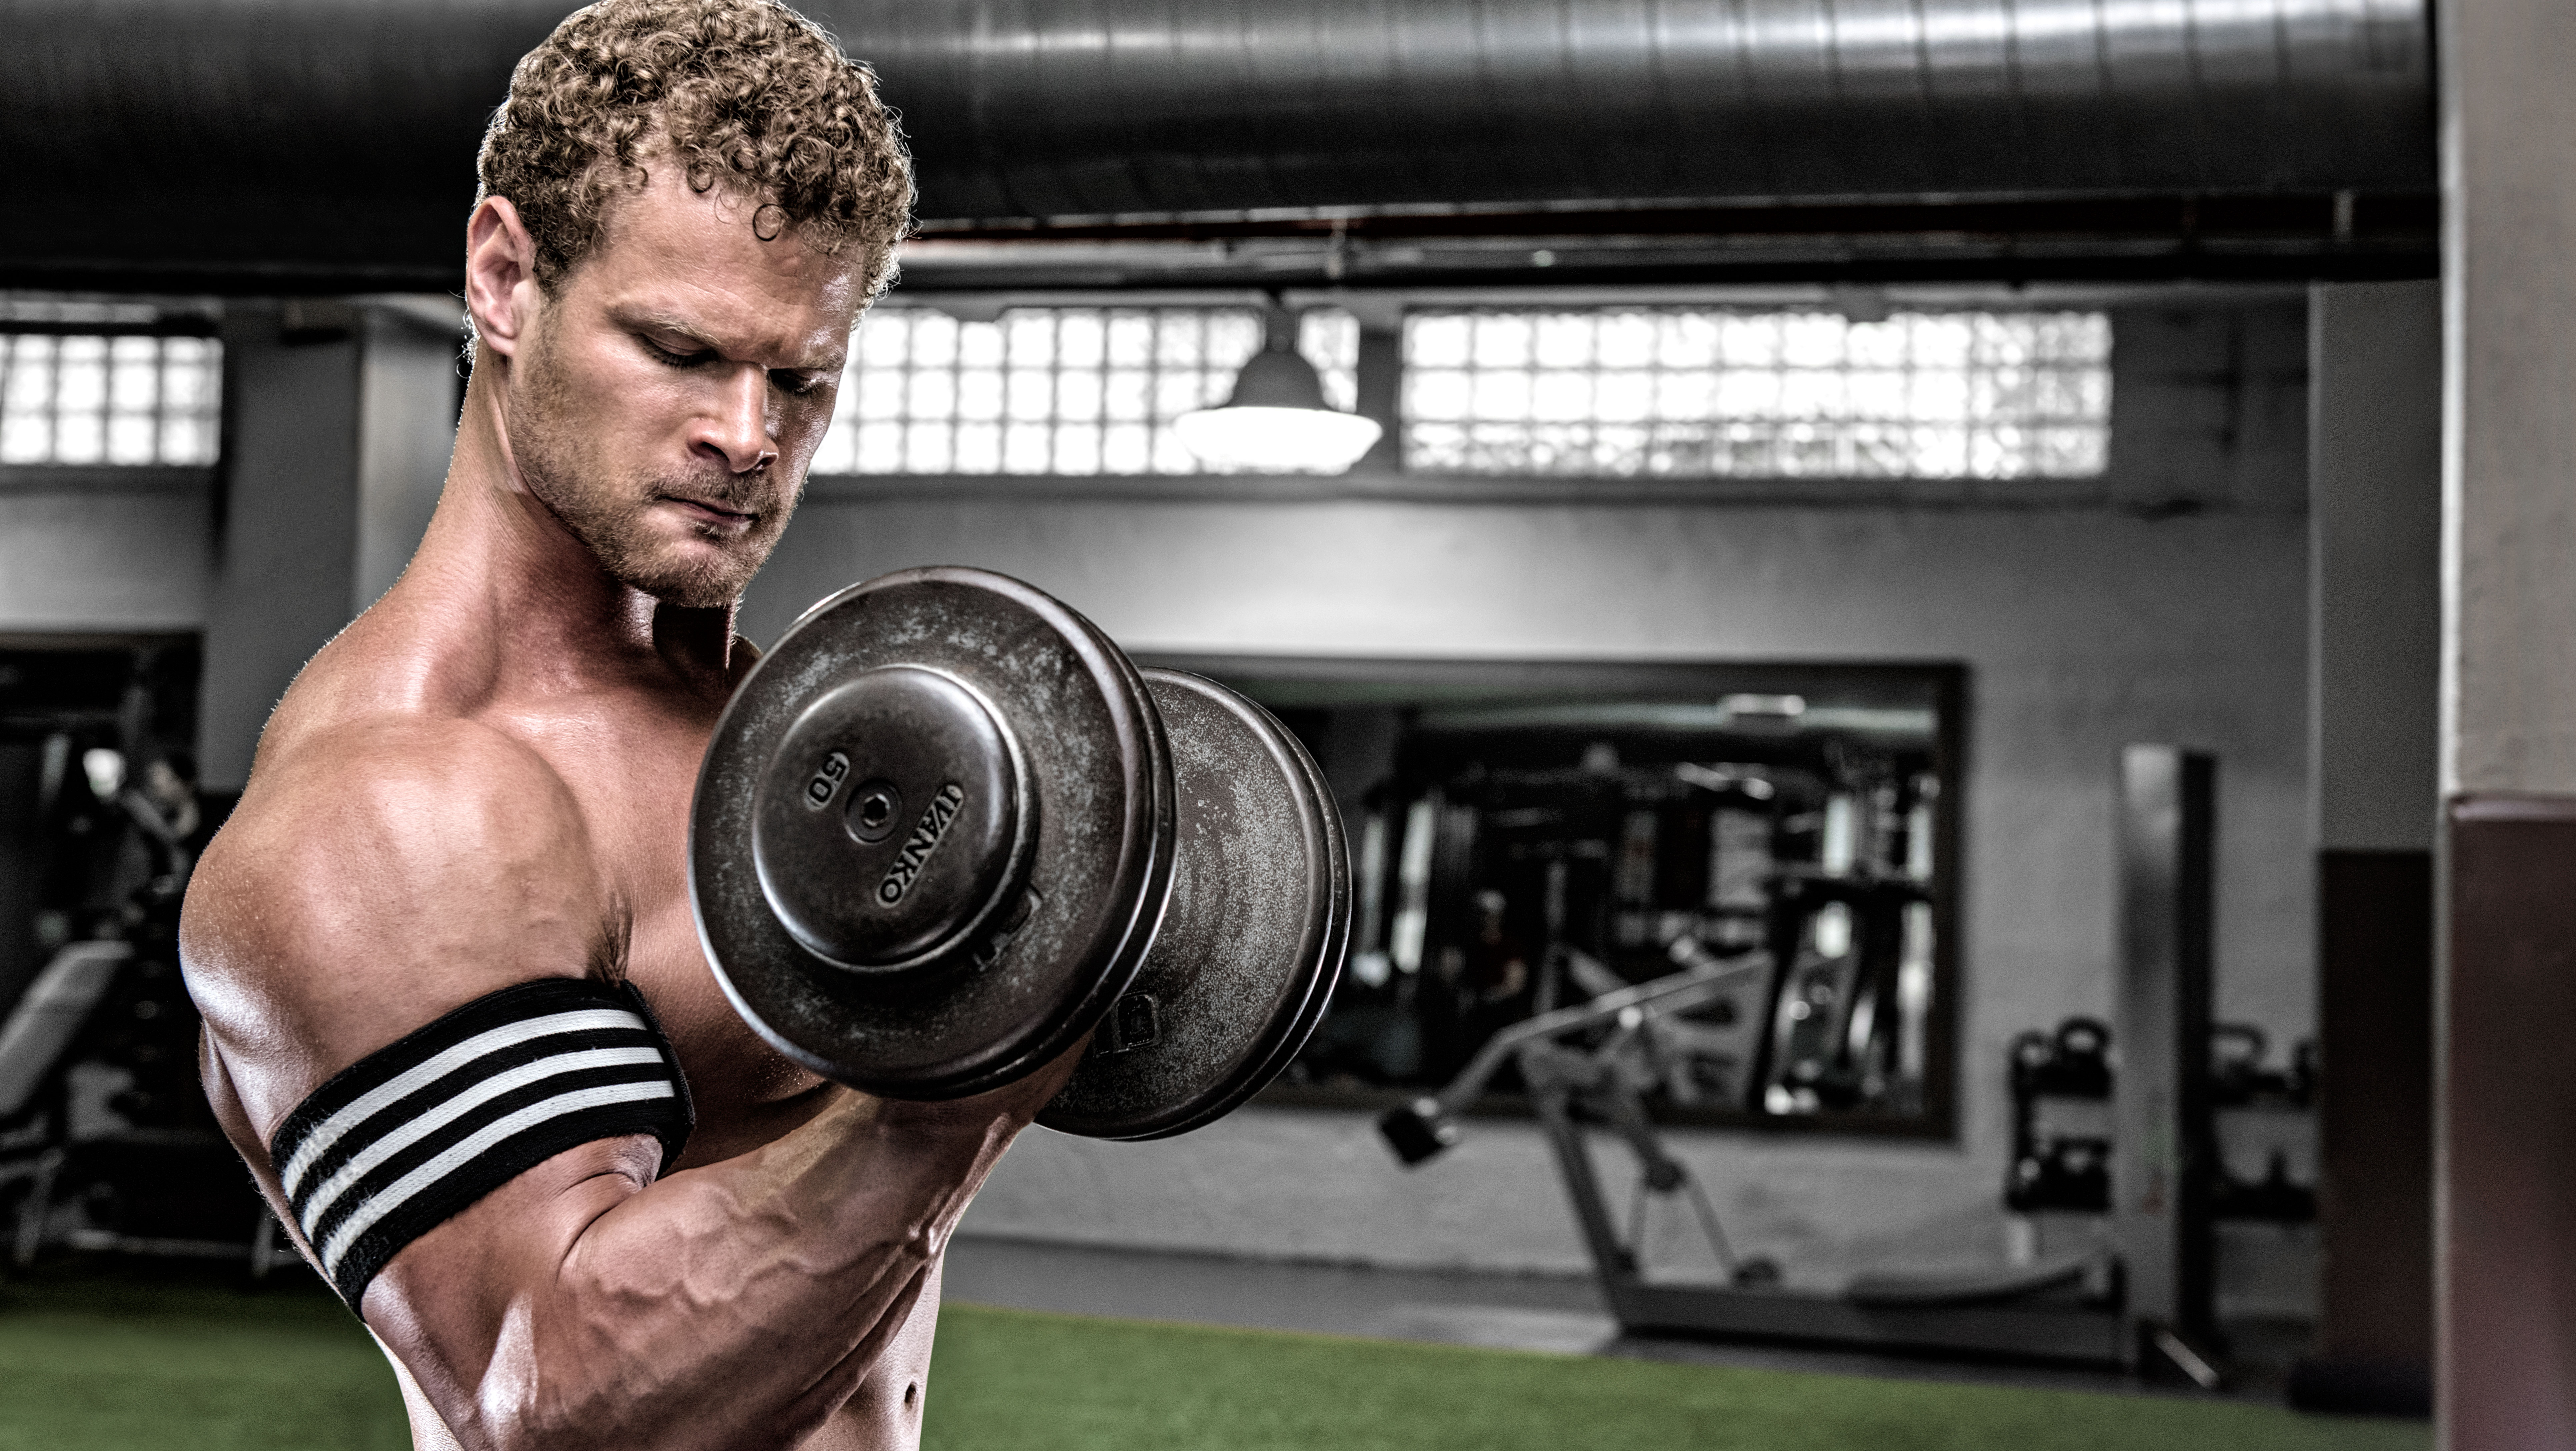 The 8 Best Exercises For Blood Flow Restriction Training Muscle Supersets On Pinterest Circuit Workouts Workout And Weight Fitness